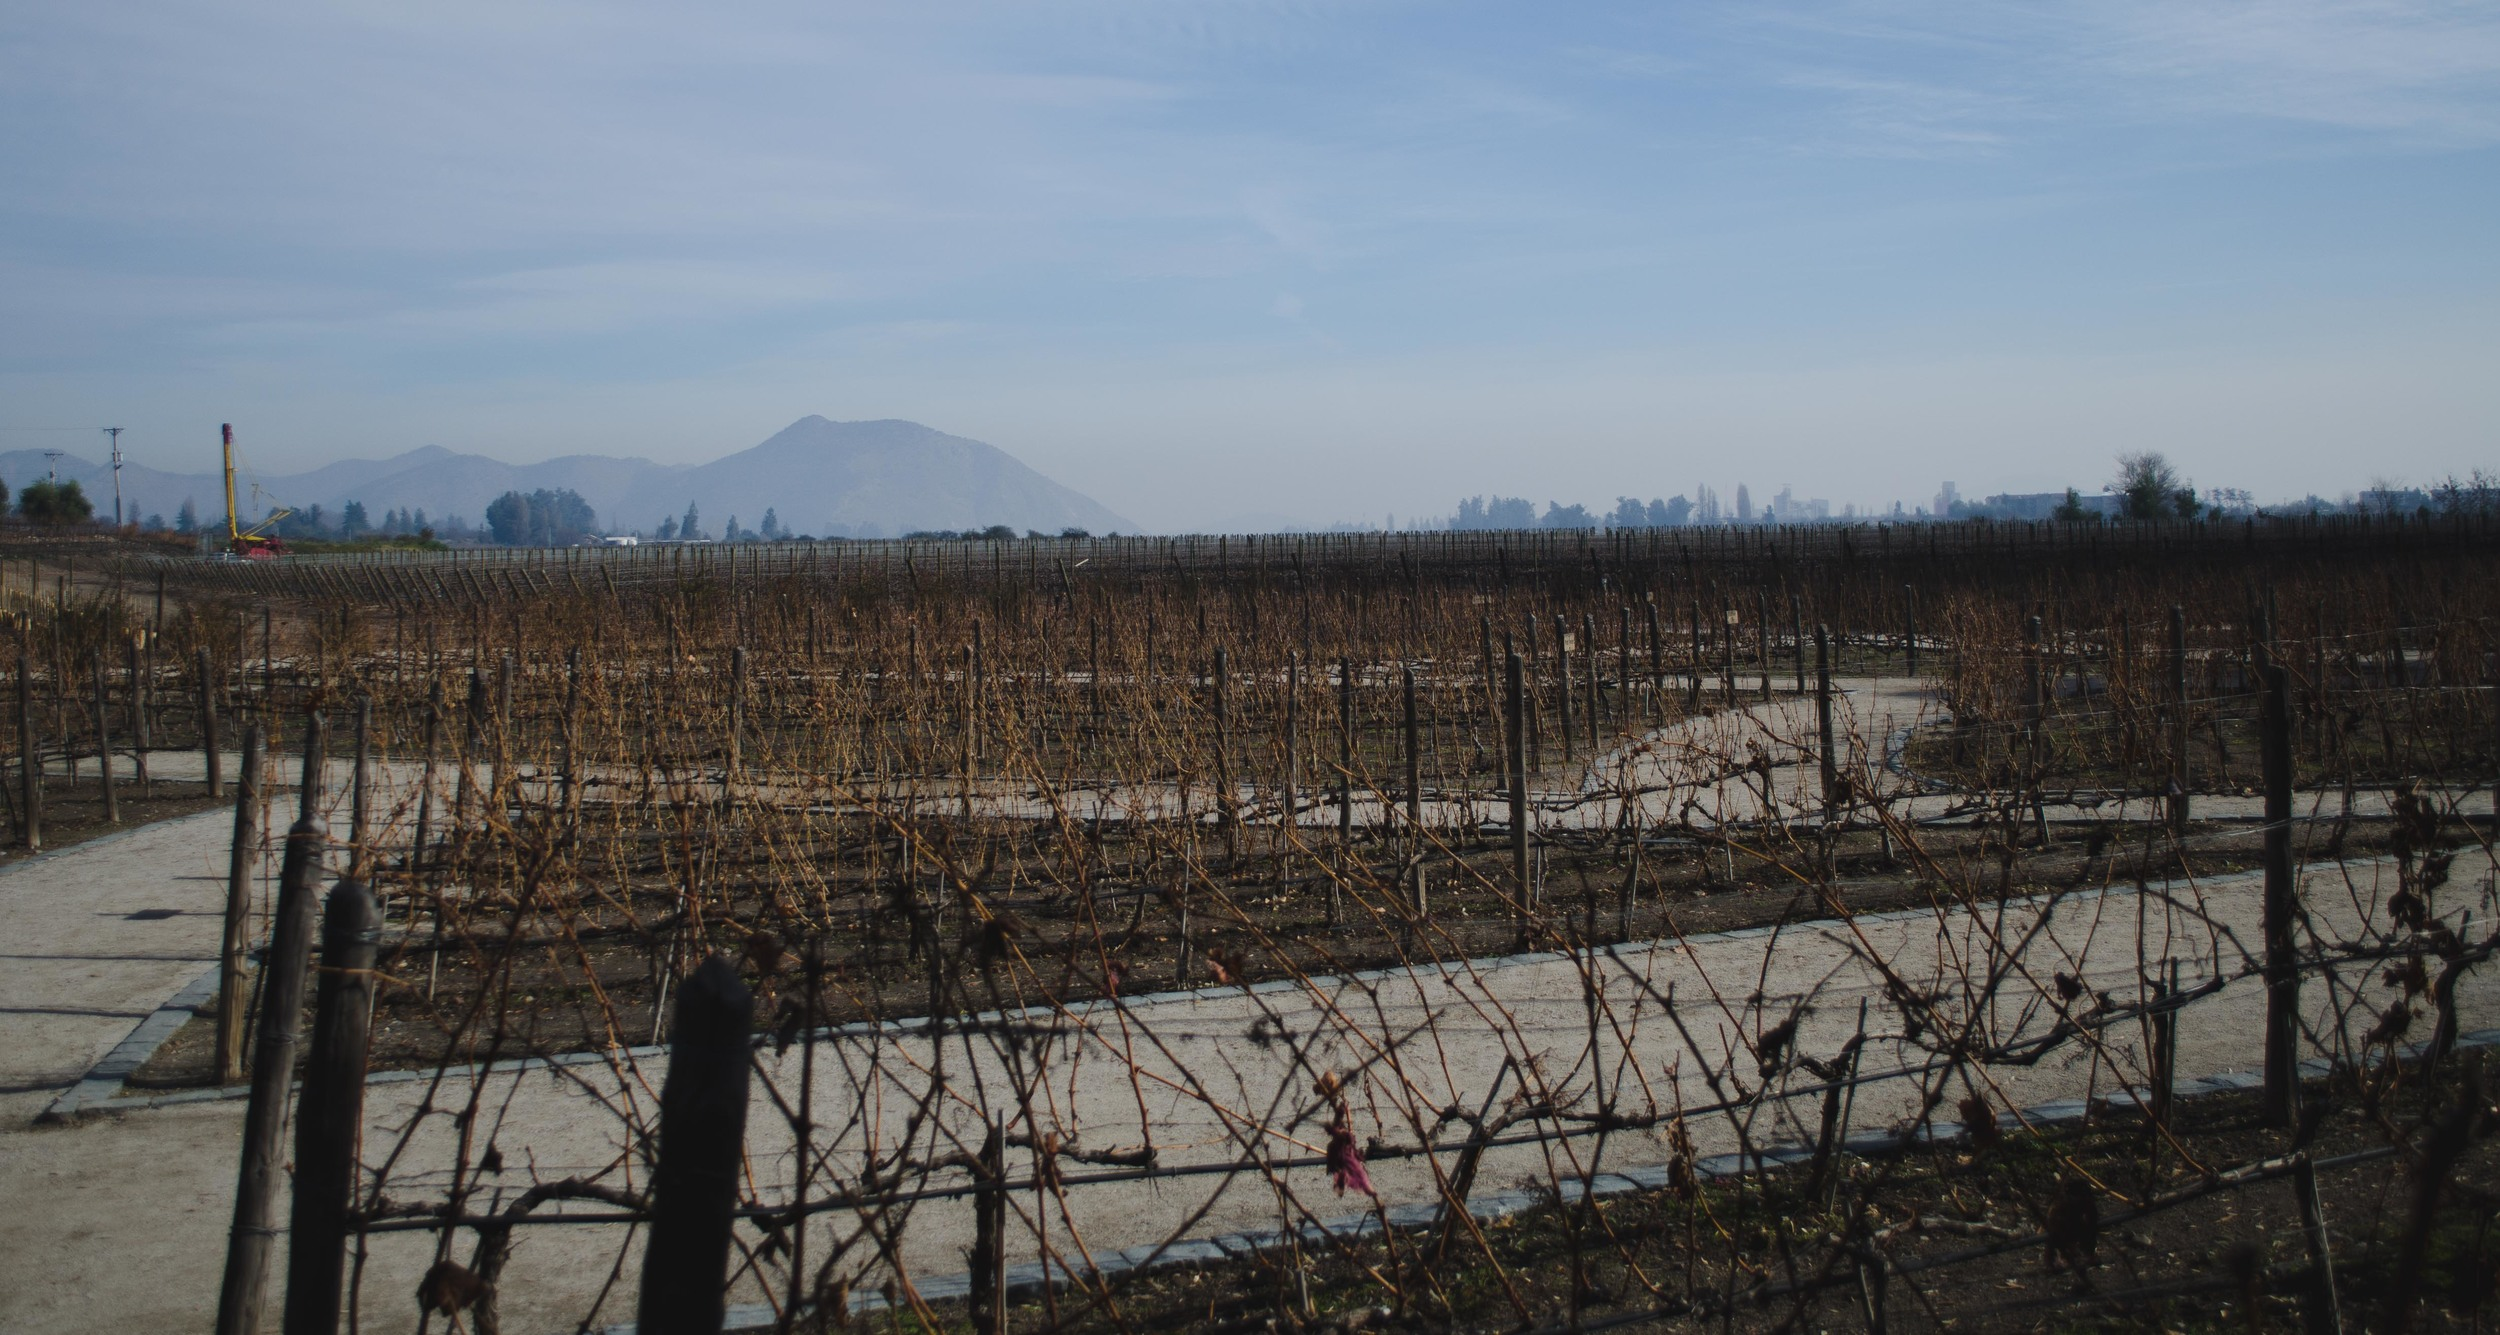 one of Concha y Toro 's many vineyards that make up their 10,000+ hectare production